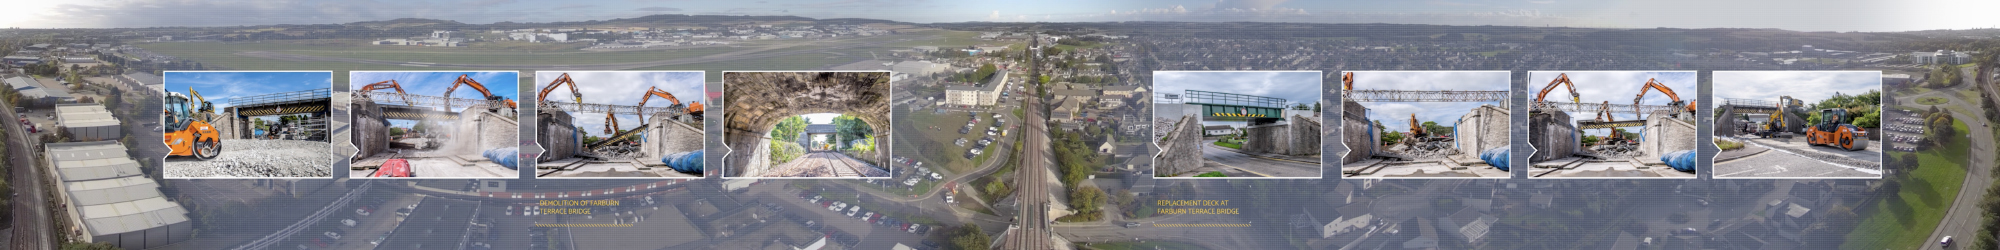 aberdeen-to-inverness-dome-vr-drone